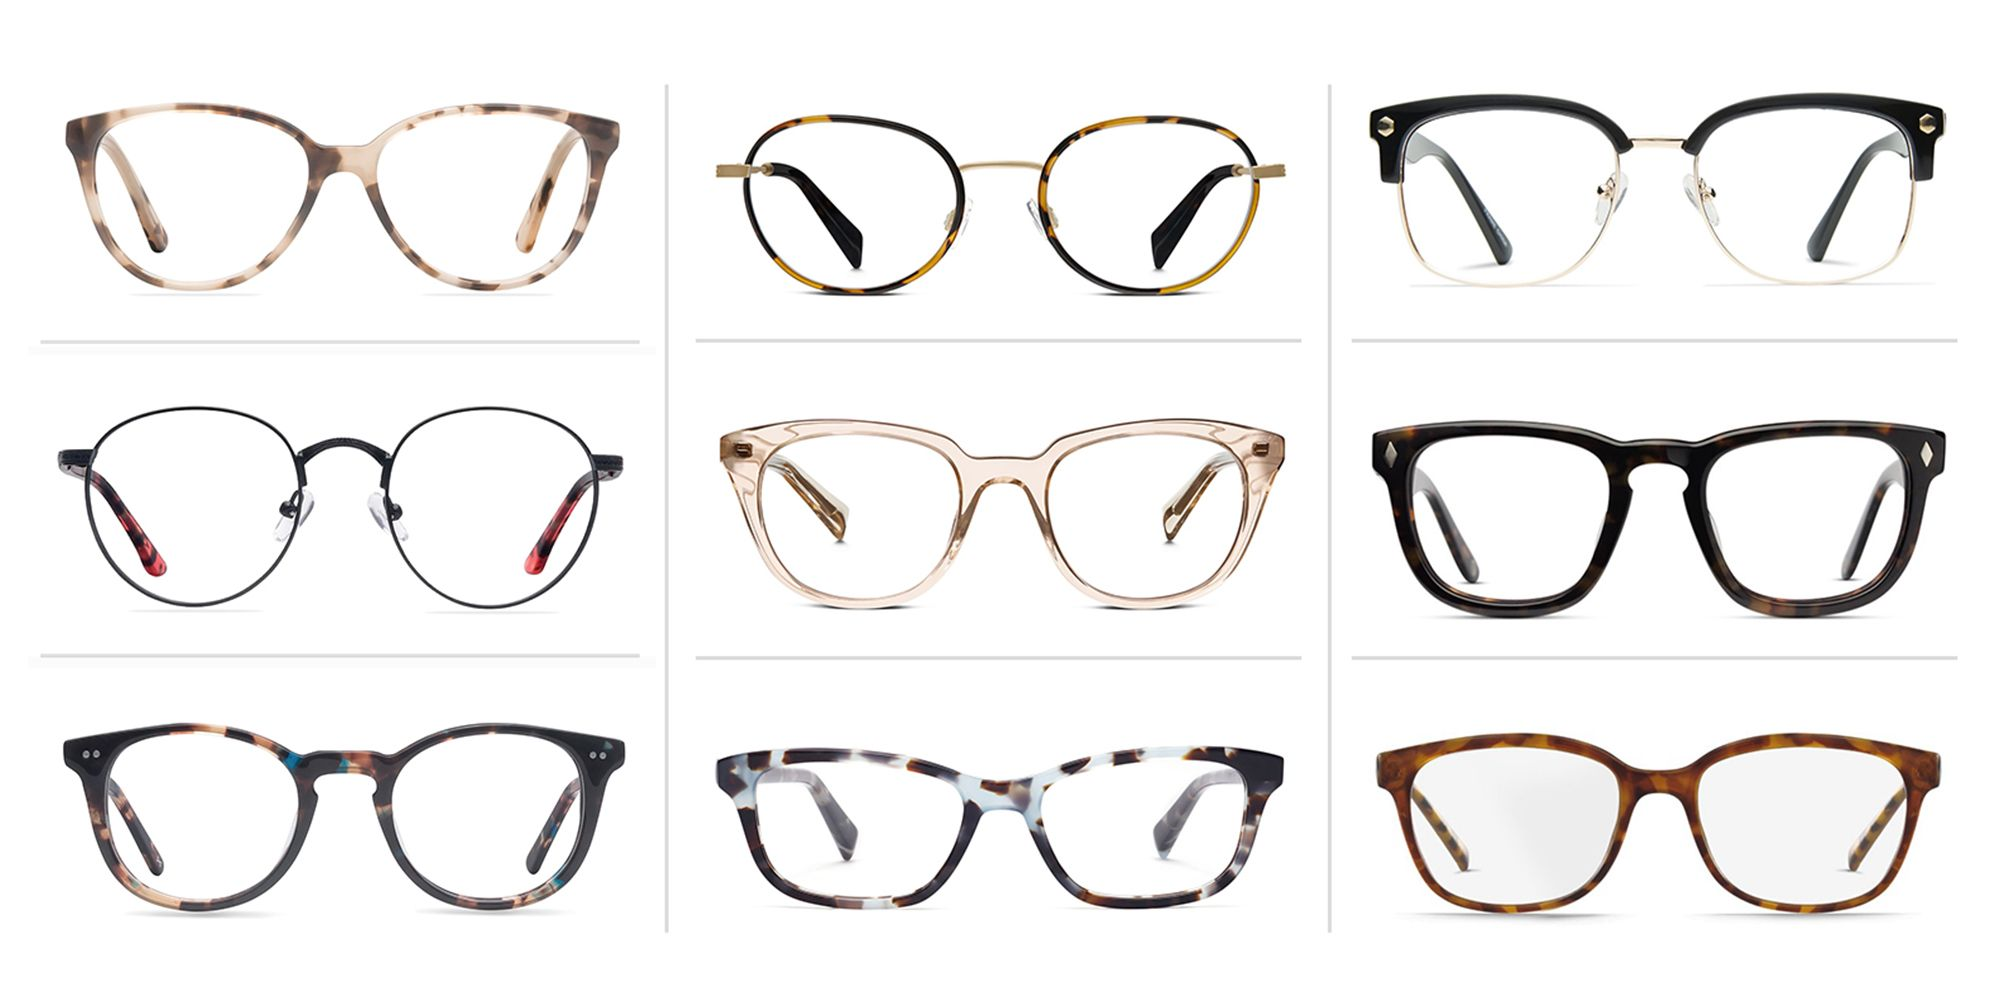 Cheap Glasses 7 Best Places To Buy Glasses Online 2018 Where To Buy Cheap